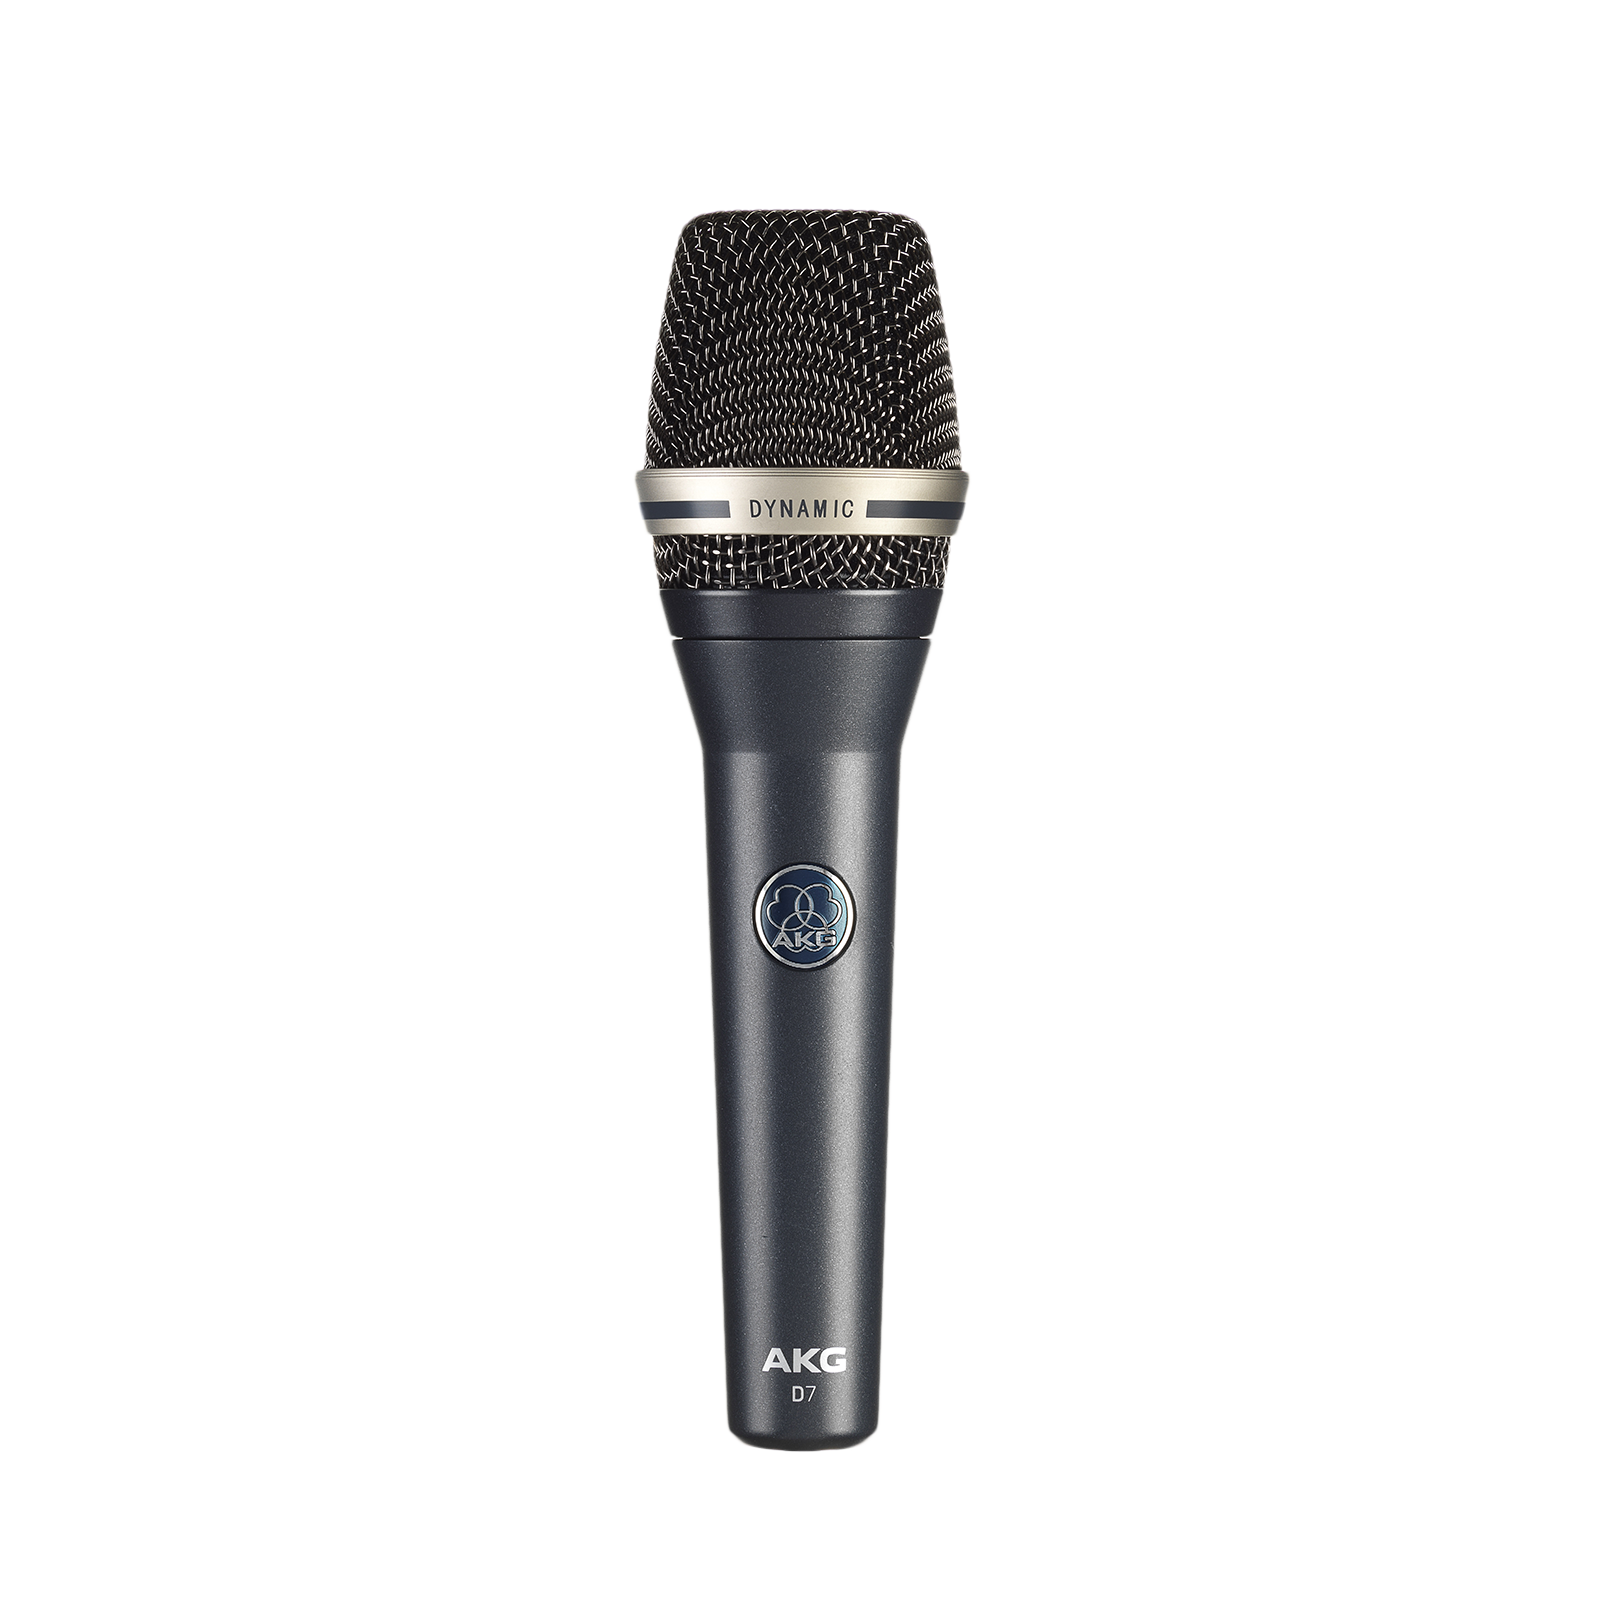 D7 - Dark Blue - Reference dynamic  vocal microphone - Hero